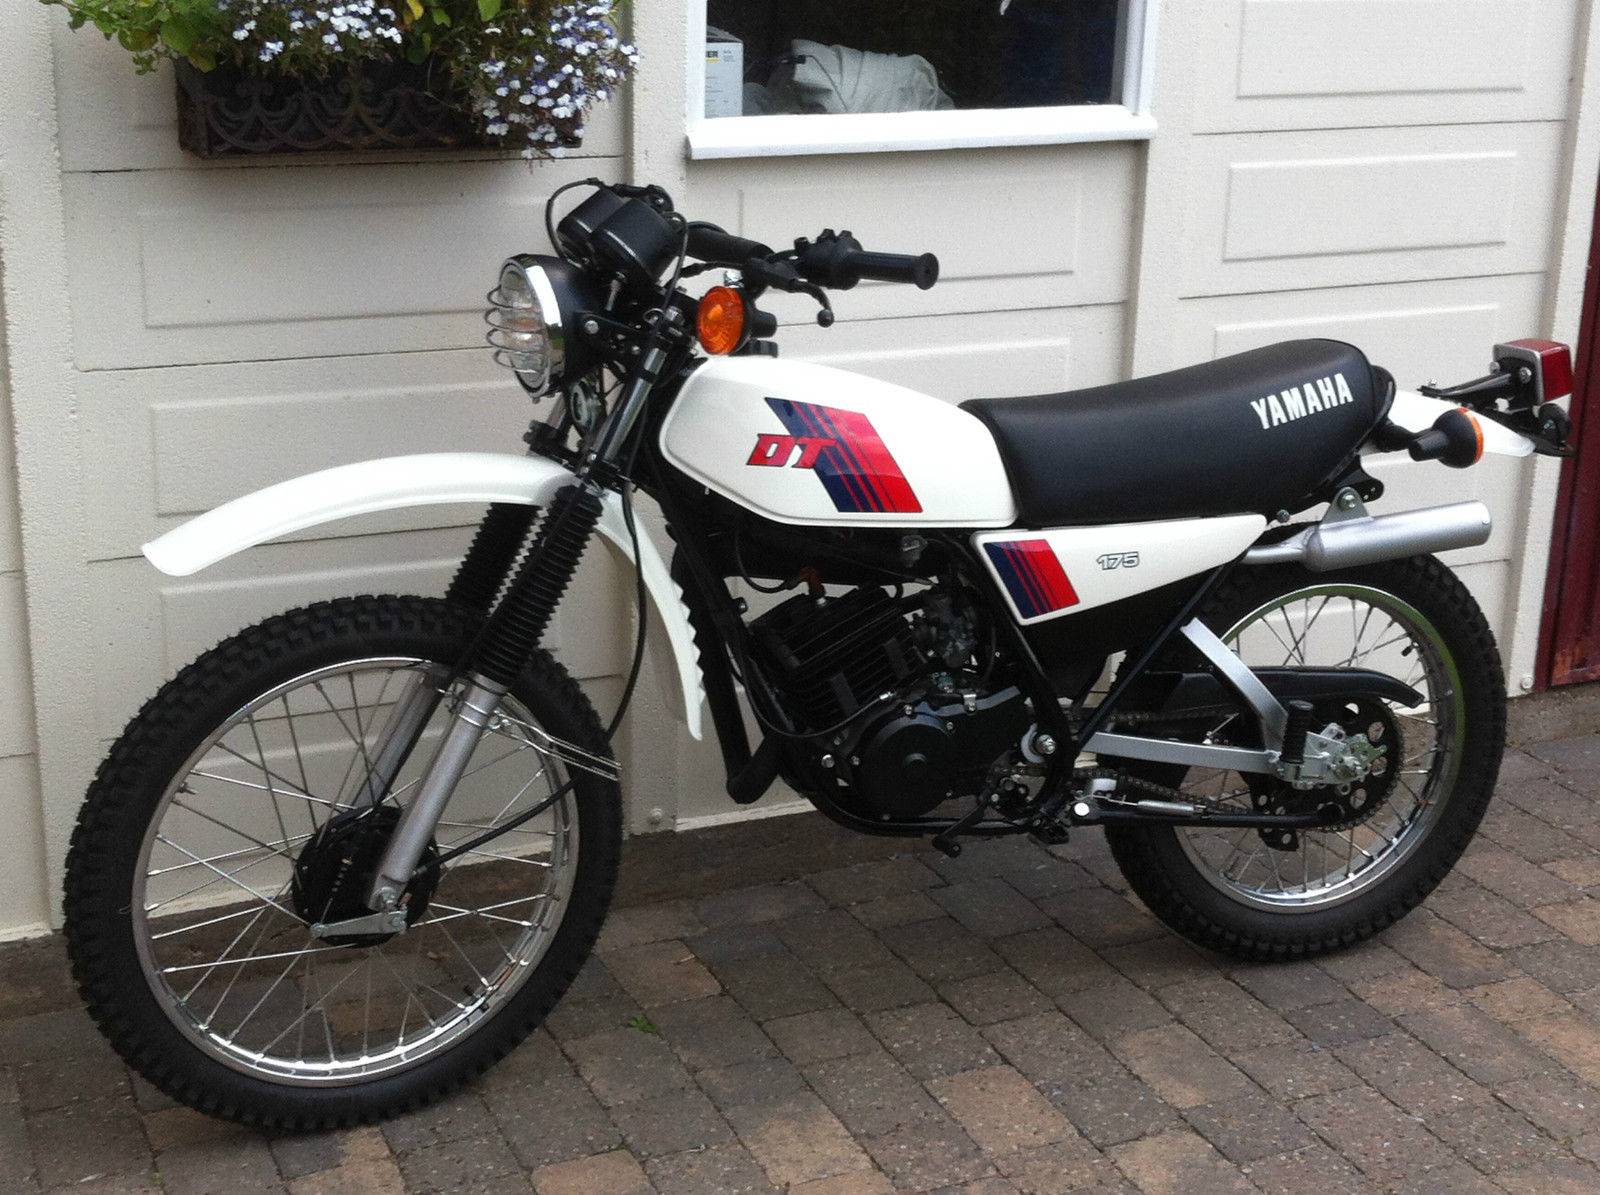 restored yamaha dt175mx 1981 photographs at classic bikes restored bikes restored. Black Bedroom Furniture Sets. Home Design Ideas